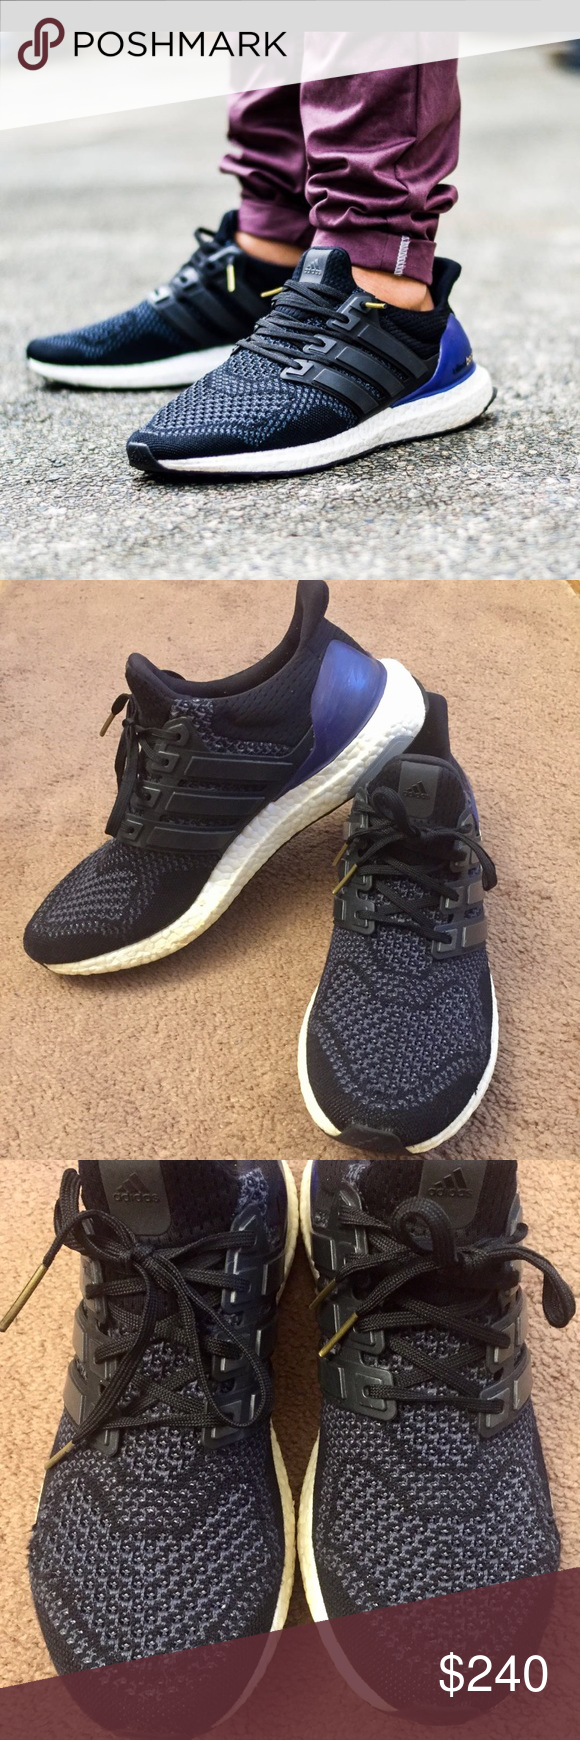 1121d3a5d4b68 Adidas Ultra Boost 1.0 OG Black Purple Gold Kanye Pre-owned Adidas Ultra  Boost 1.0